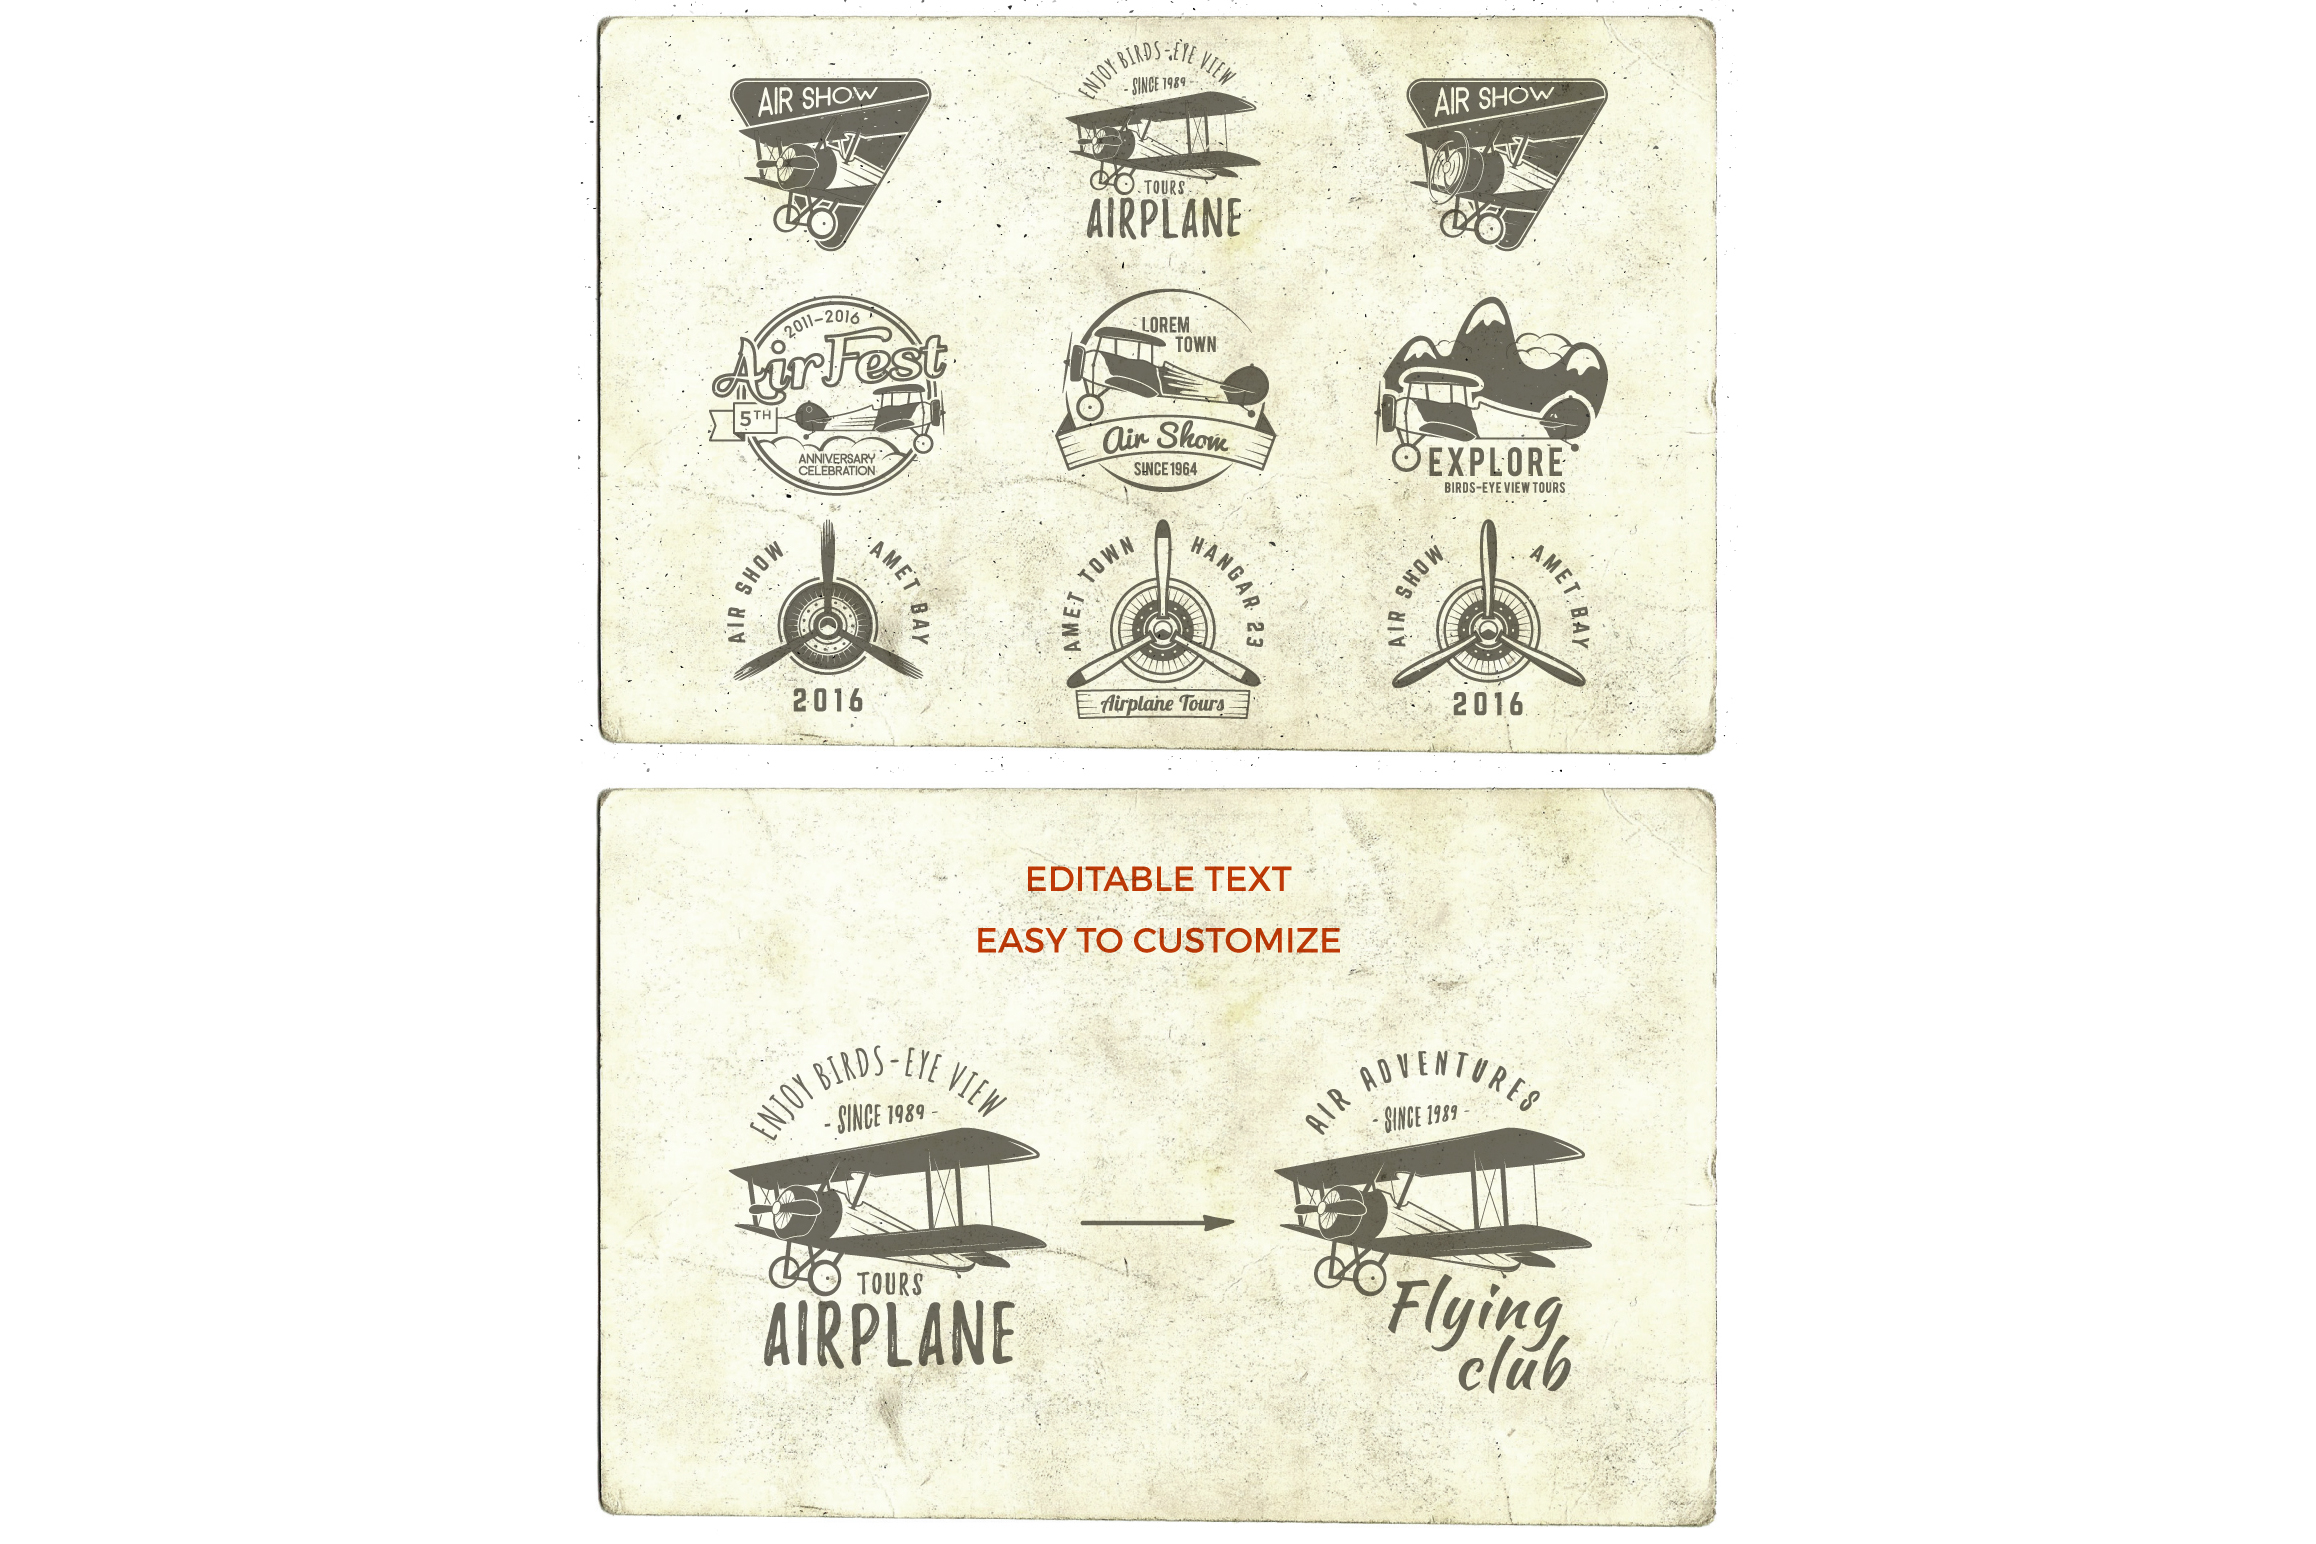 Airplane Badges & Design Elements example image 2